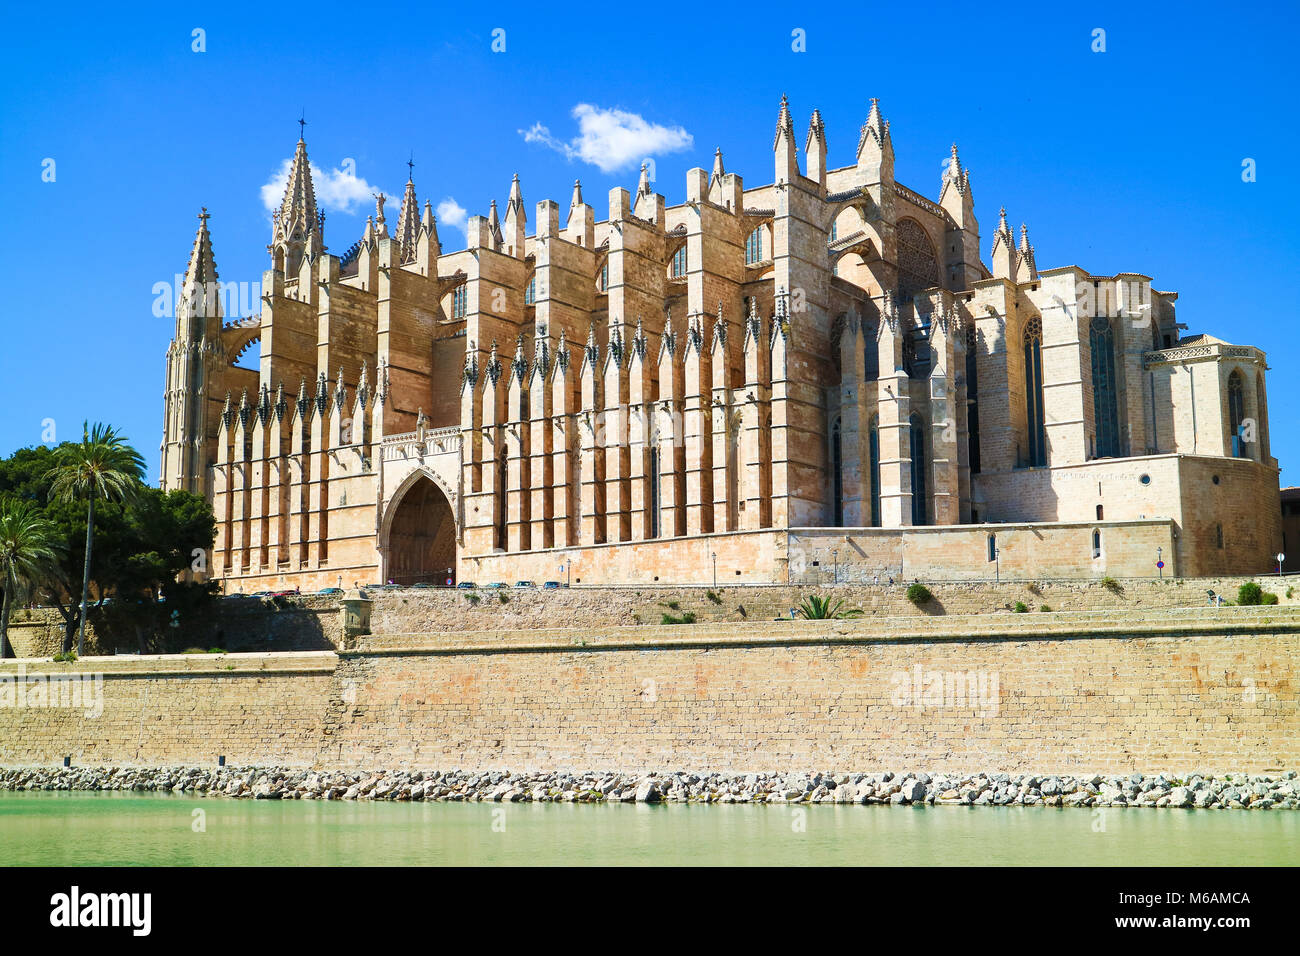 La Seu - the famous medieval gothic catholic cathedral in the capital of the island. Palma de Mallorca, Spain. - Stock Image